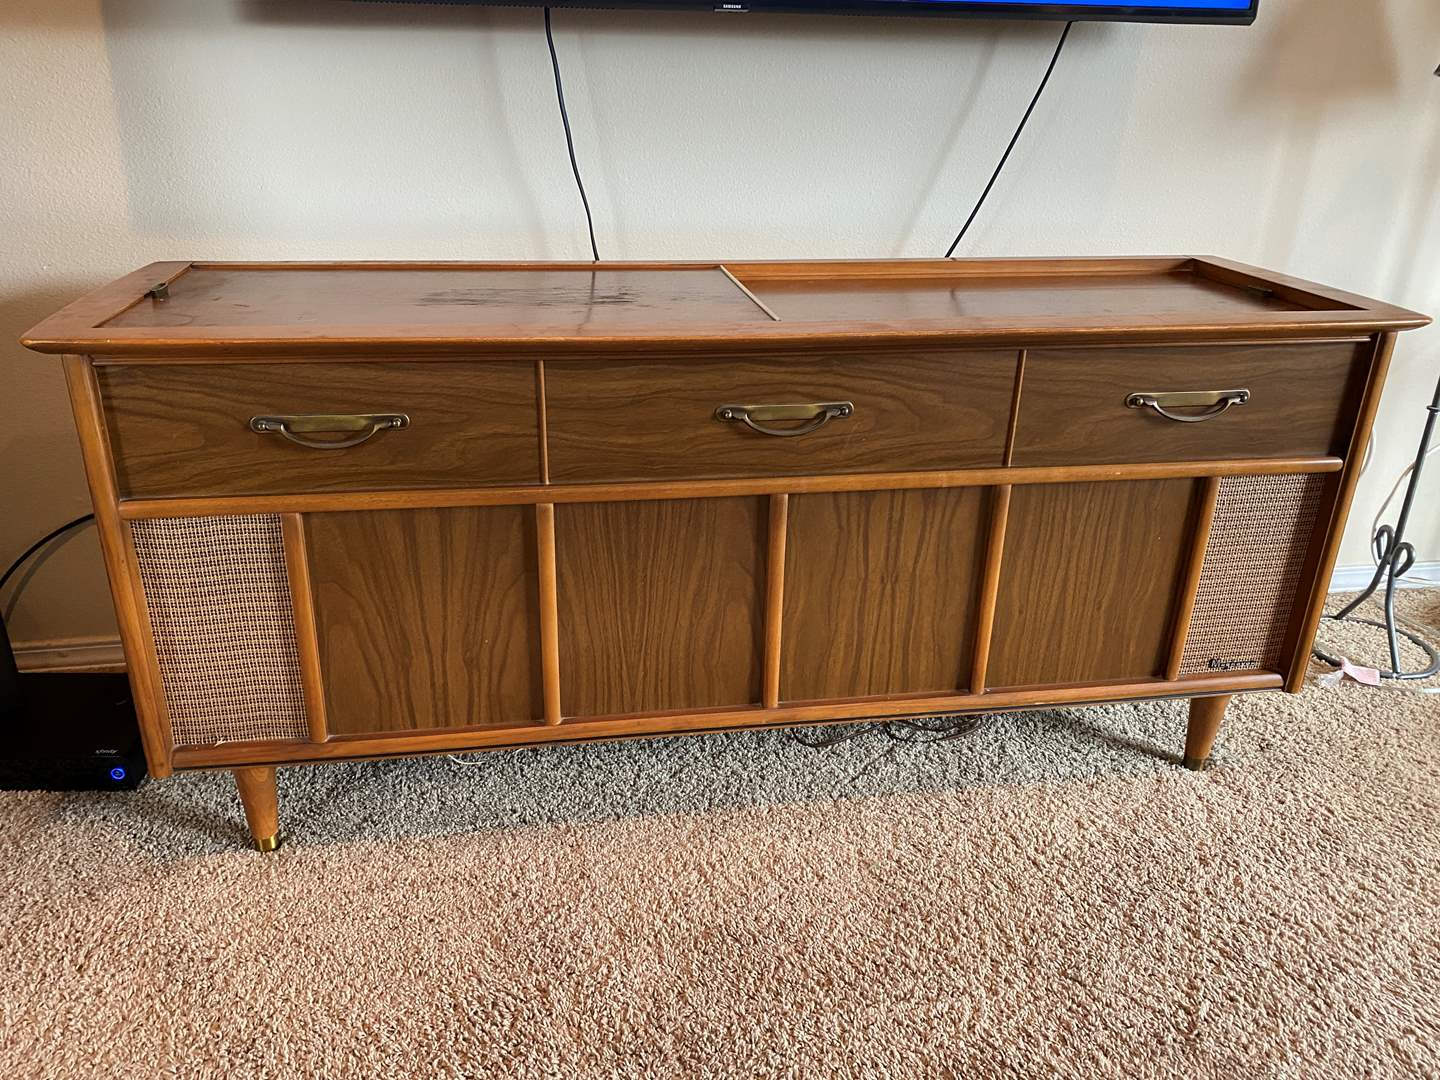 Lot # 14 - Vintage Mid-Century Magnavox Stereophonic High Fidelity Stereo Console - (Powers On) (main image)